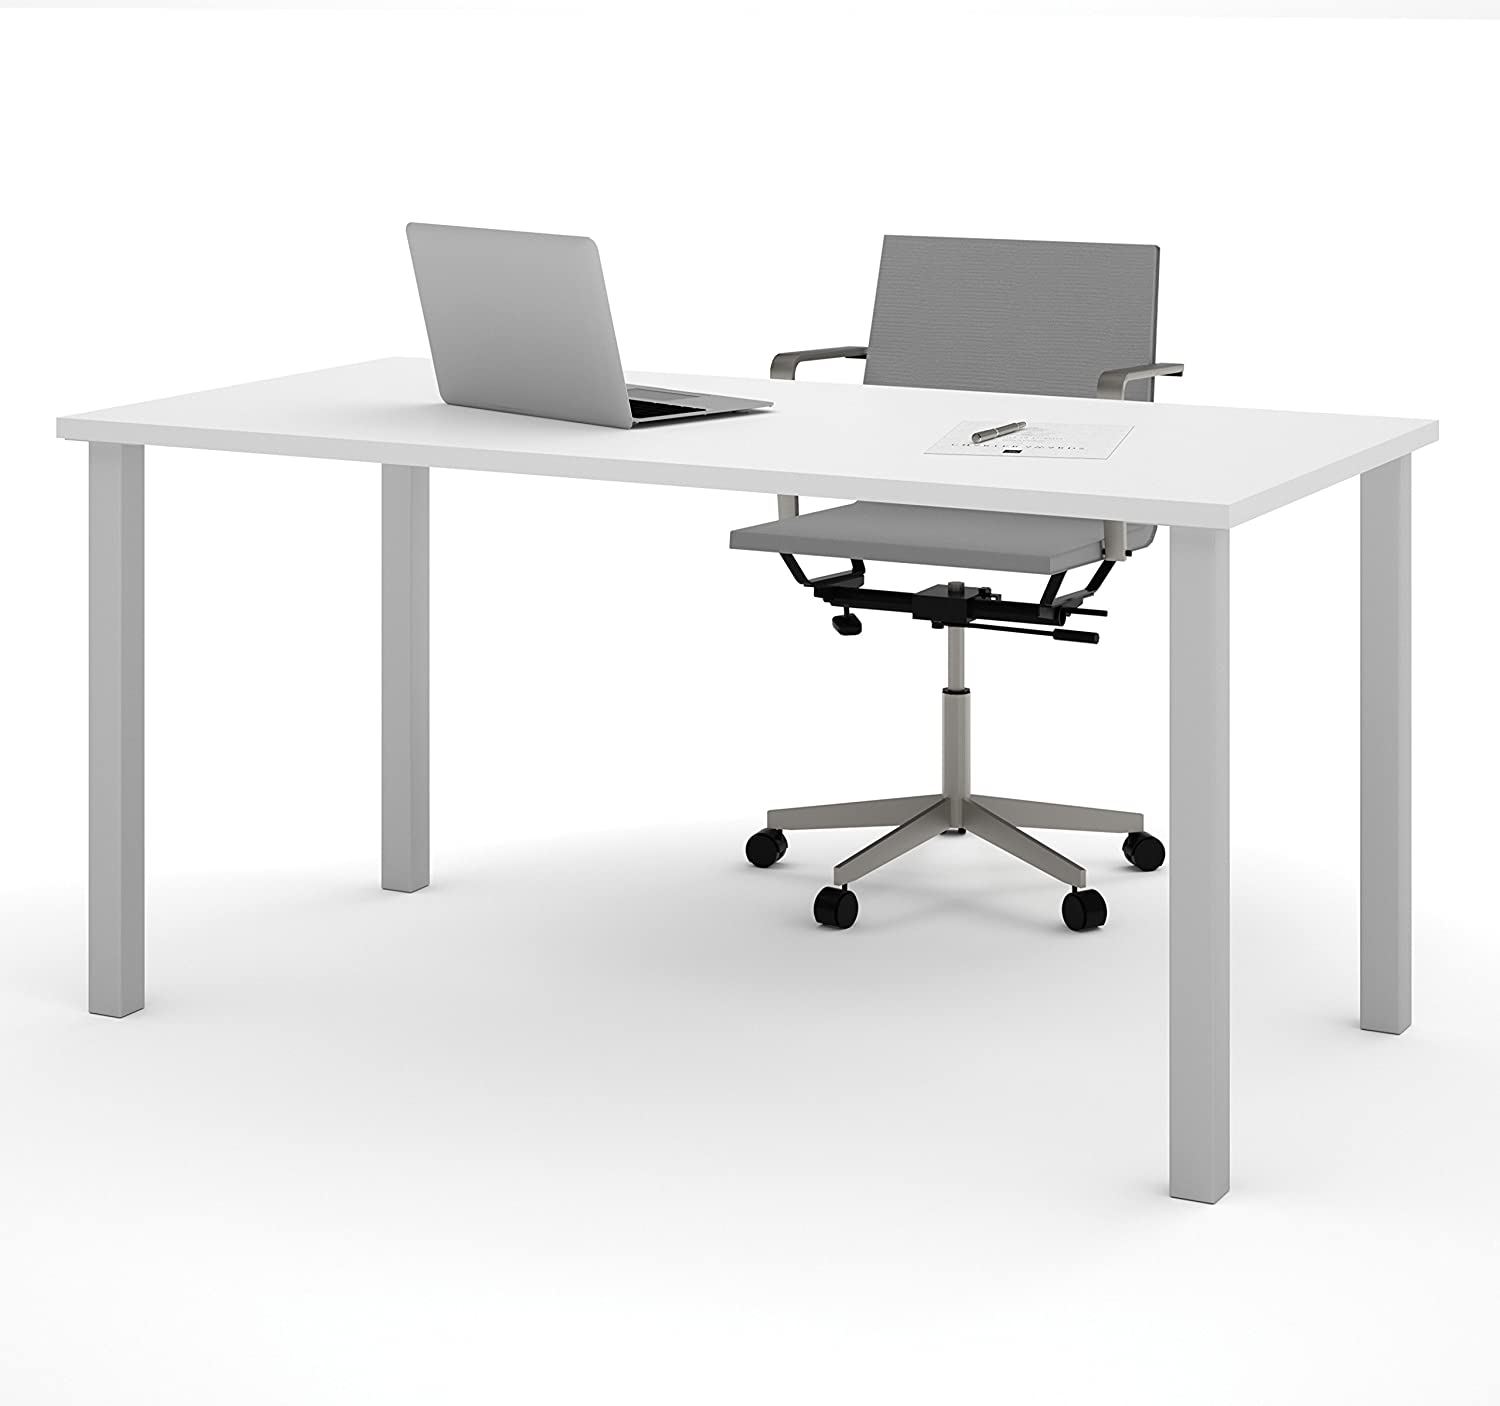 metal legs rust and modern finished products with top real desk handmade